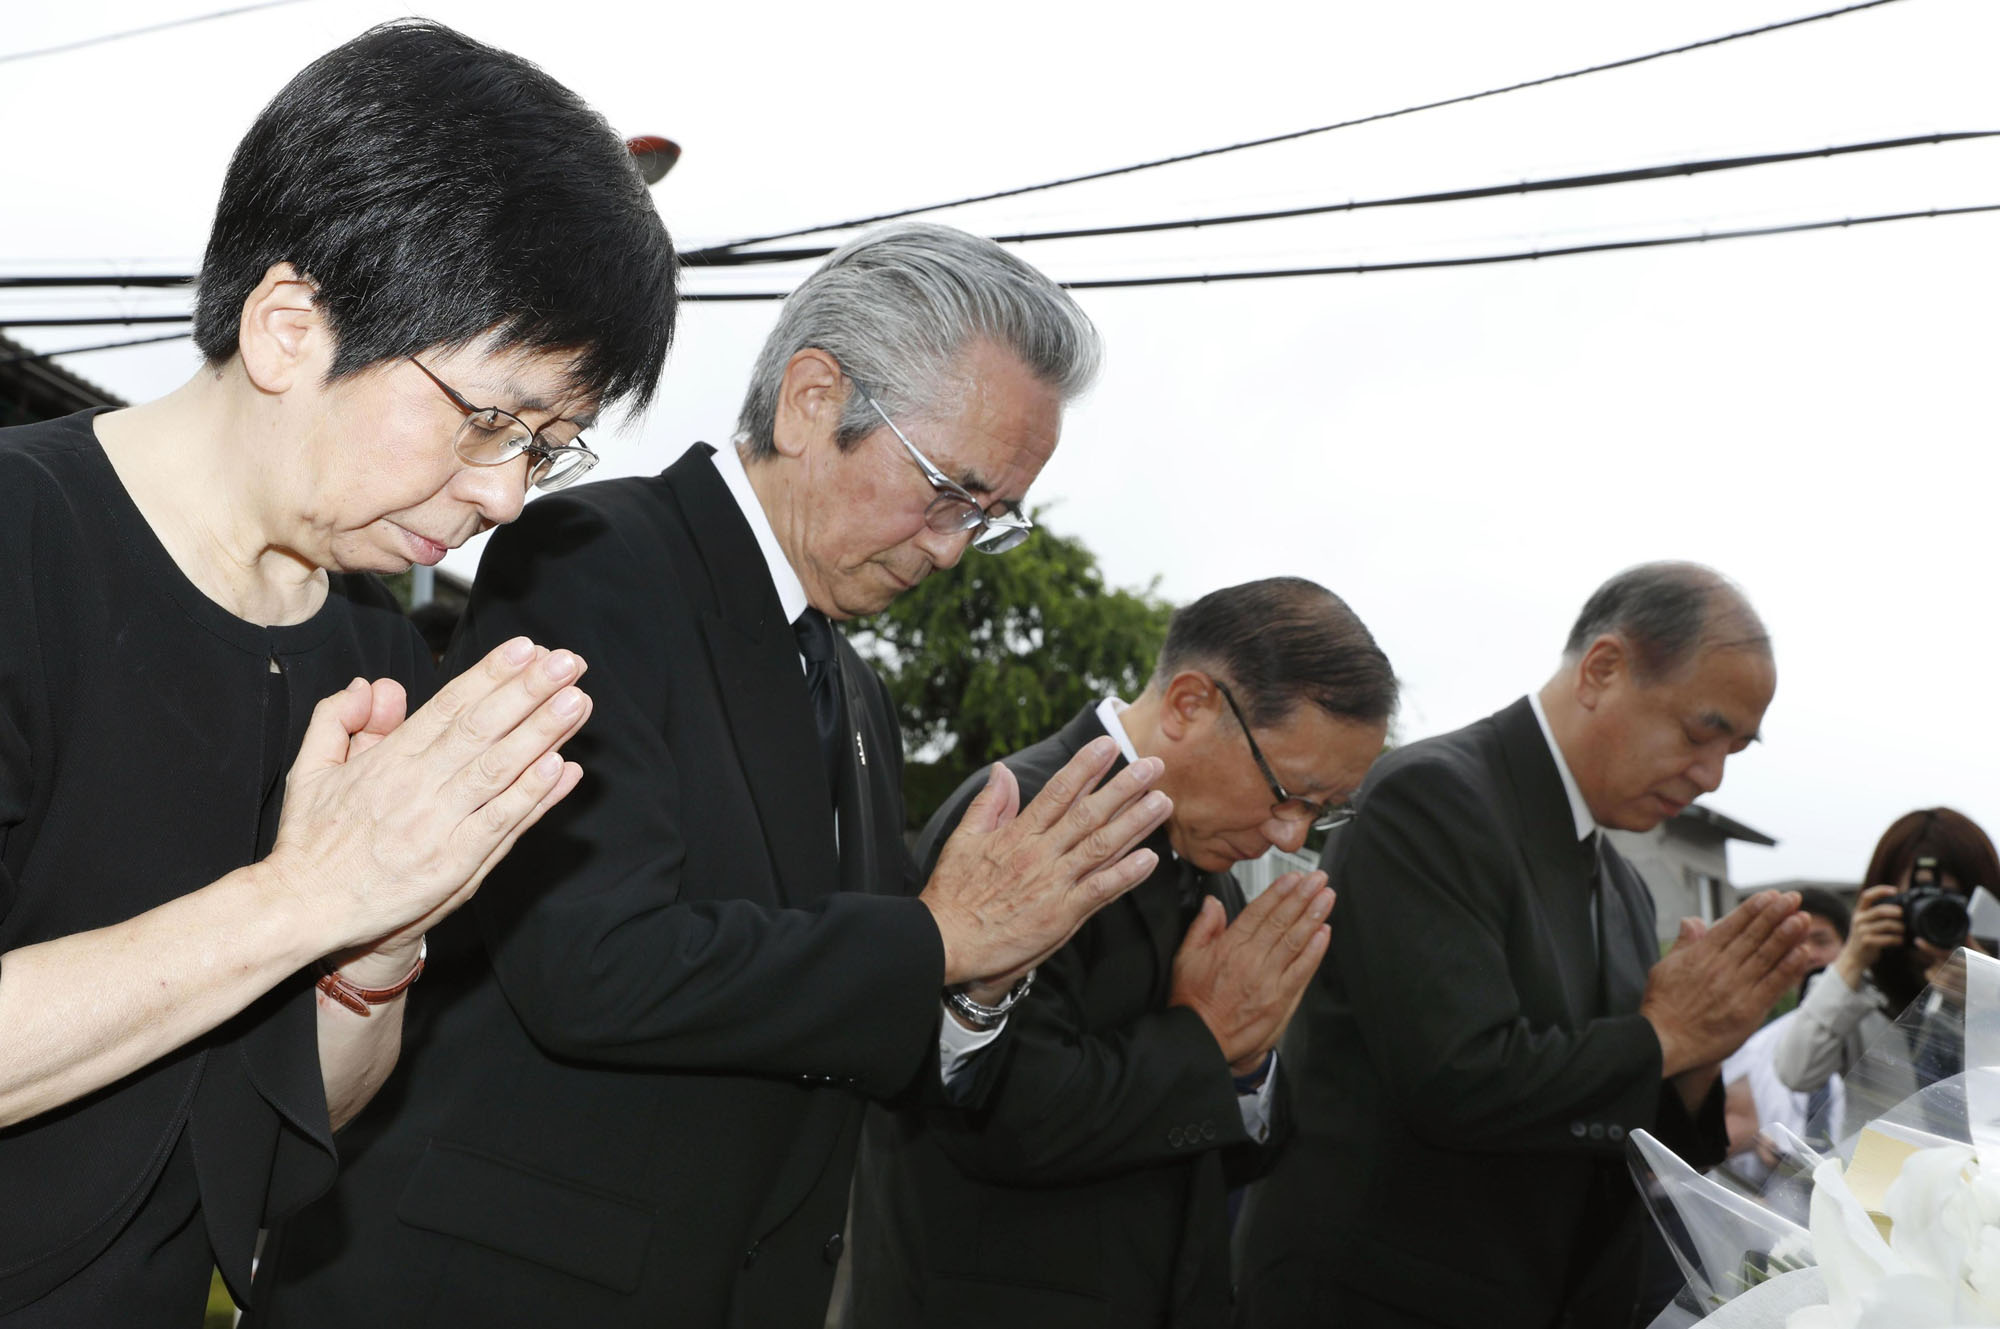 Kaoru Irikura (far left), head of the care home Tsukui Yamayuri En in Sagamihara, Kanagawa Prefecture, offers a prayer in front of the facility on Thursday, the two-year anniversary of a fatal stabbing rampage that took place there. | KYODO